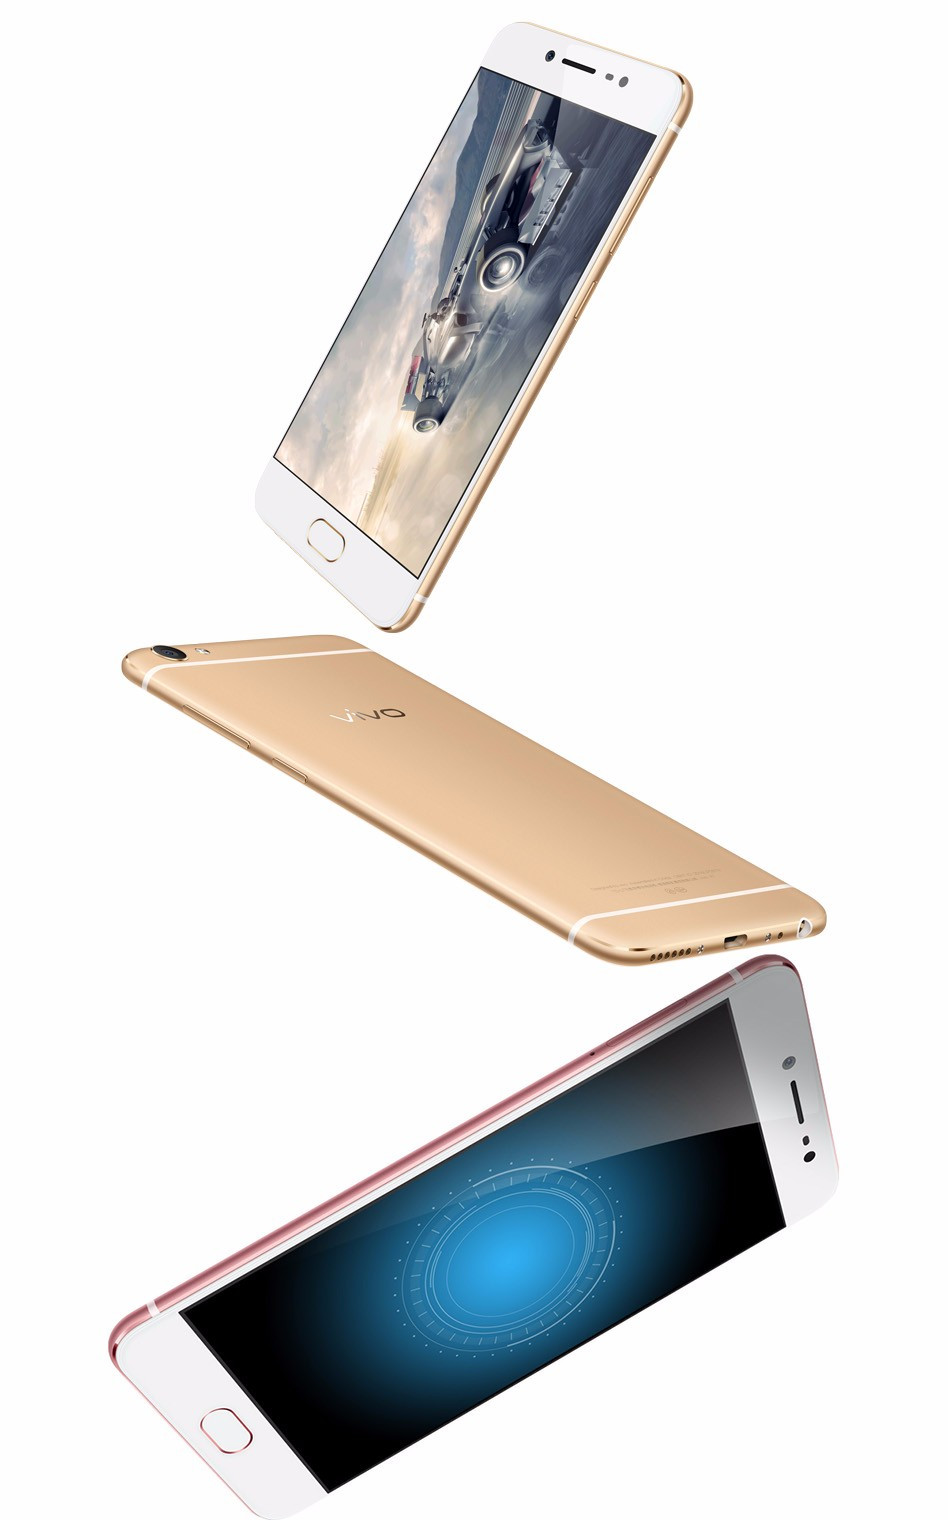 Original VIVO X7 Cell Phone 4GB RAM 64GB ROM Snapdragon MSM8976 Octa Core 5.2 inch 16.0MP Camera Android 5.1 SmartPhone